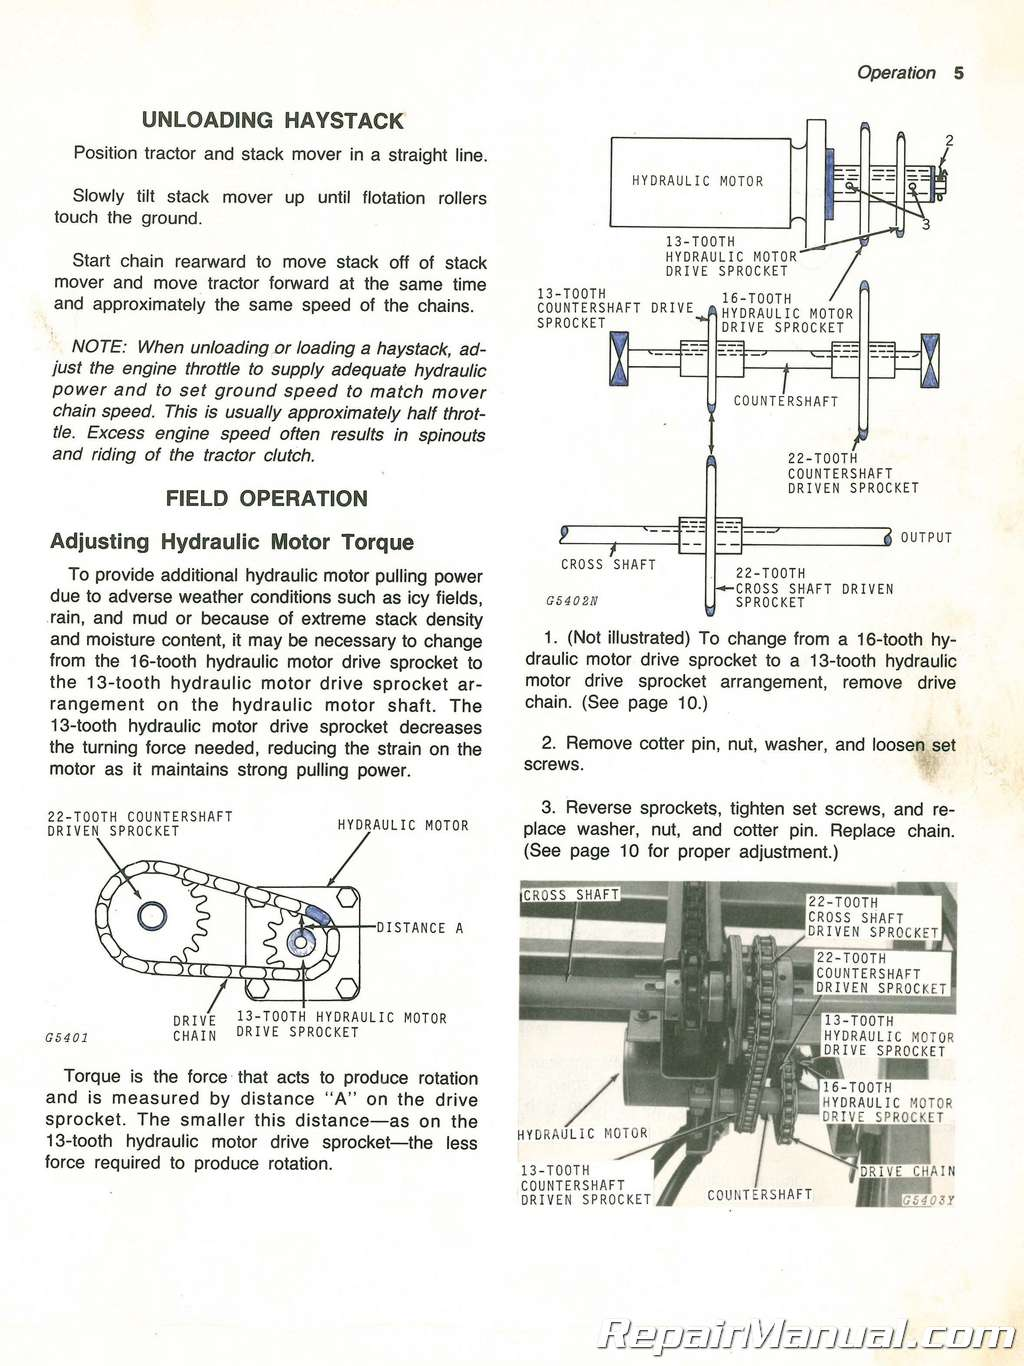 Used John Deere 200 Stack Mover Operators Manual Jd Series Hydraulics Schematic Diagram on